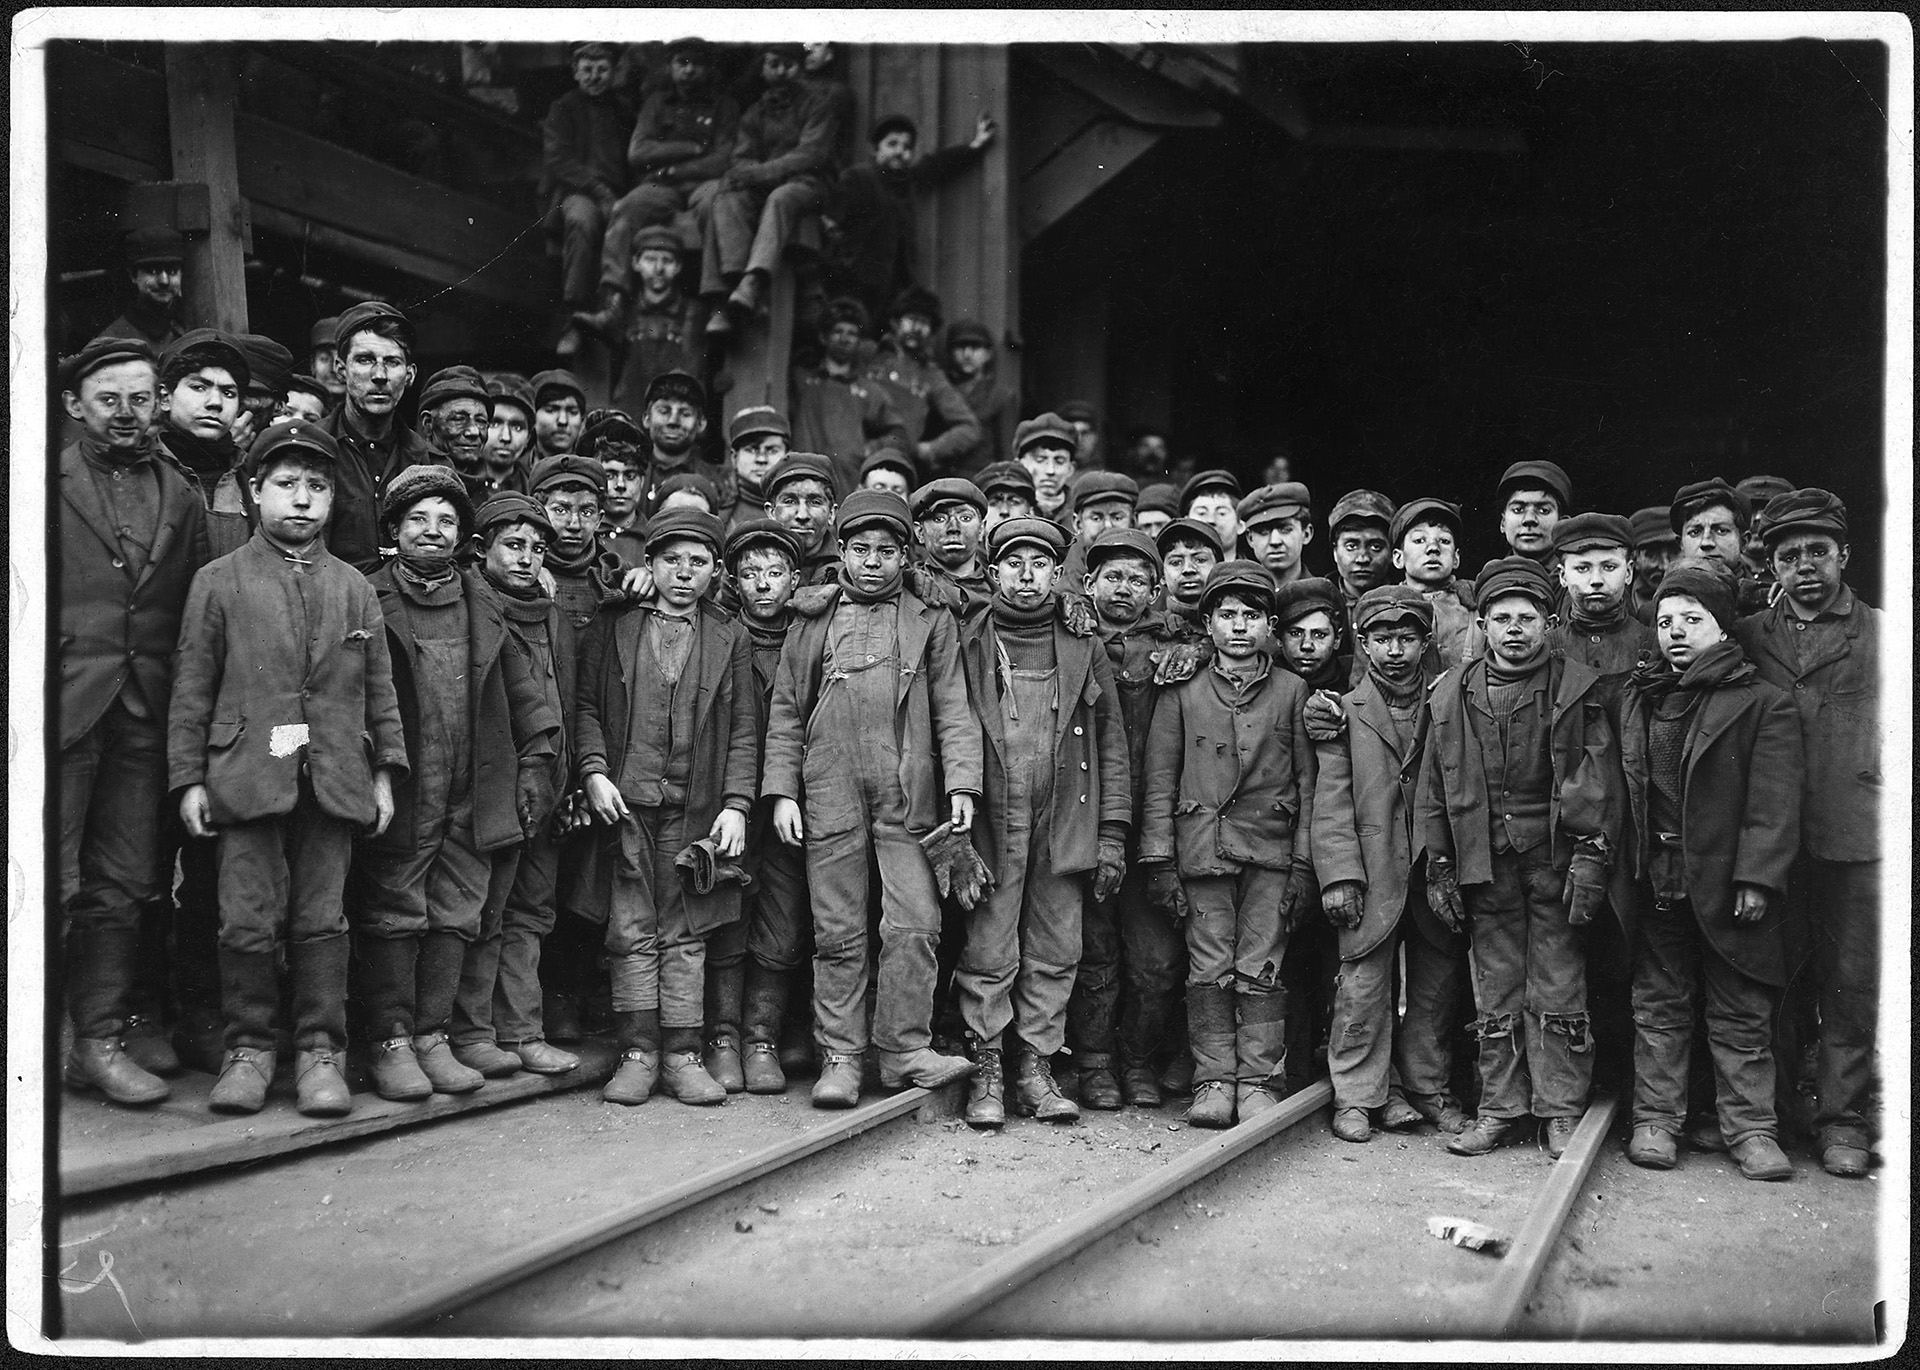 an introduction to the history of child labour in china Child labor was first recognized as a social problem with the introduction of the factory system in late 18th forced labor, child prostitution labor history.